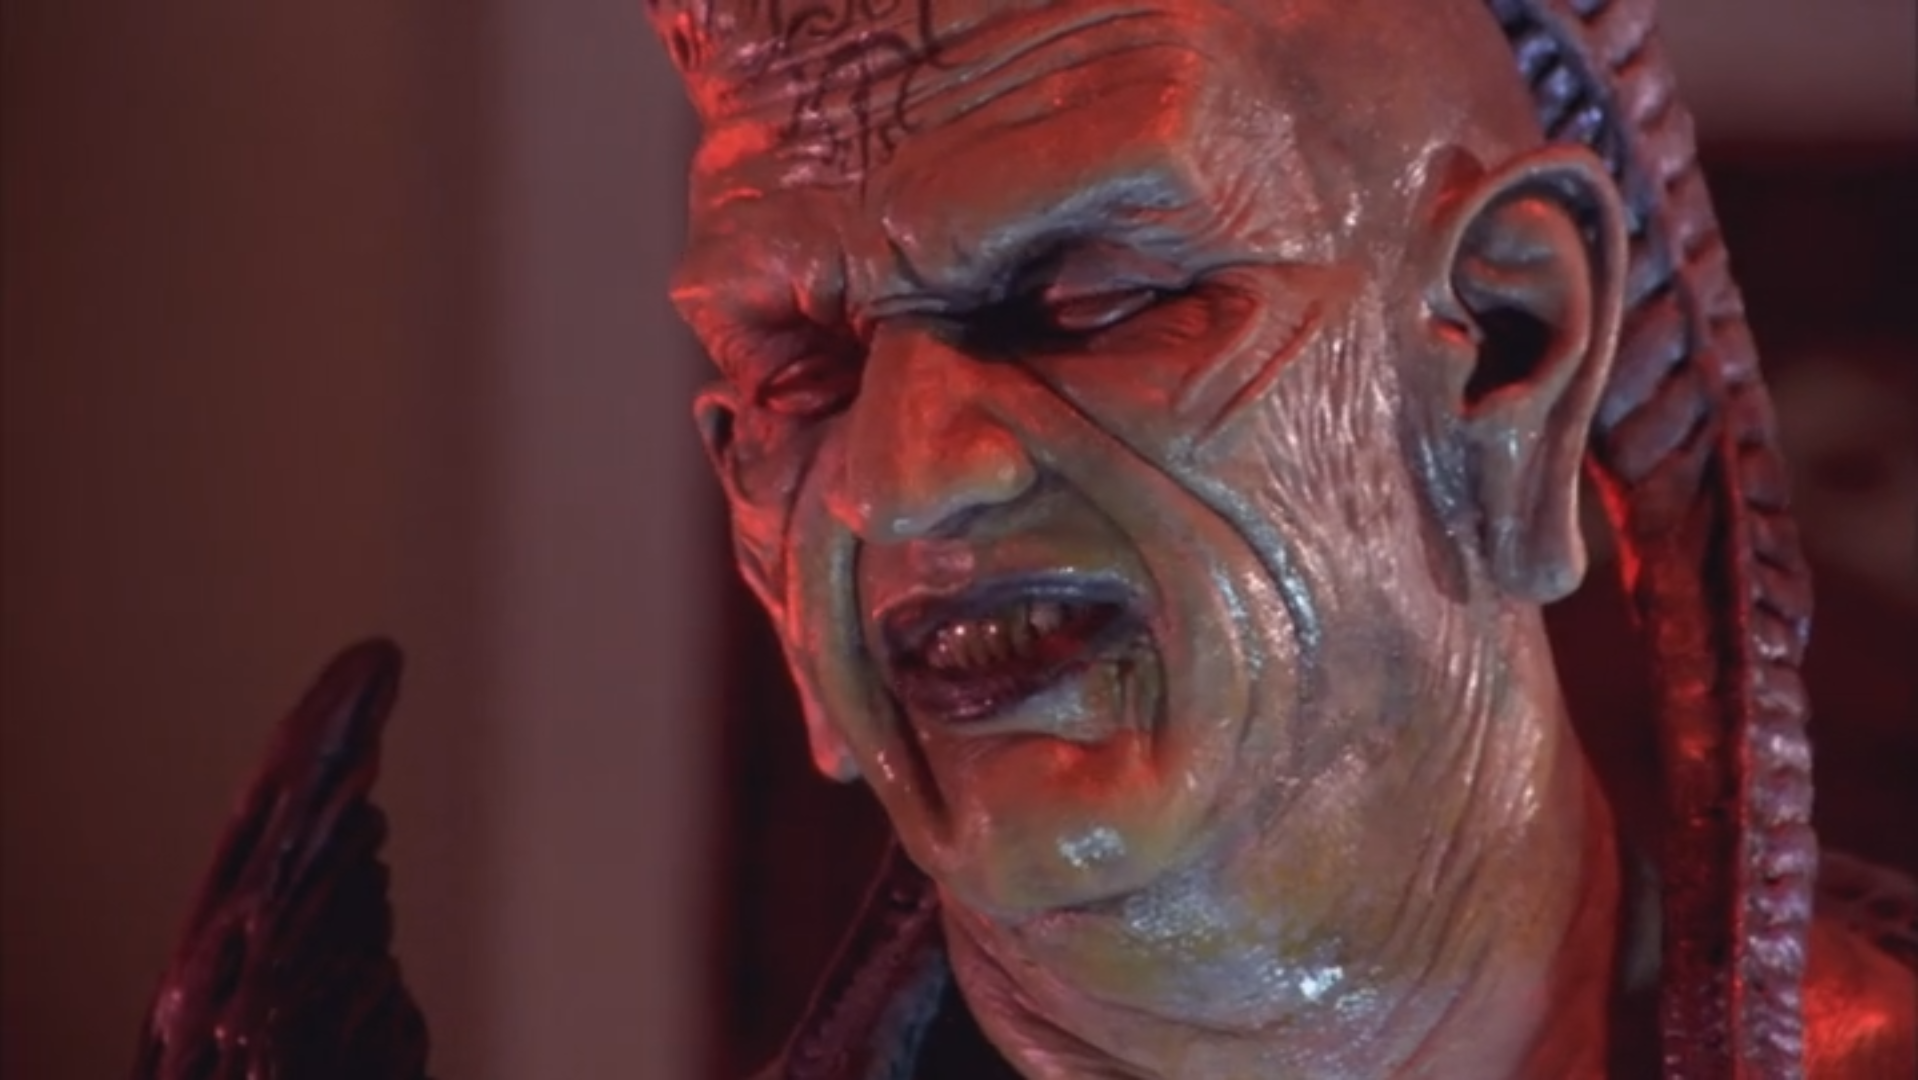 Wishmaster 3: Beyond the Gates of Hell is beyond comprehension.